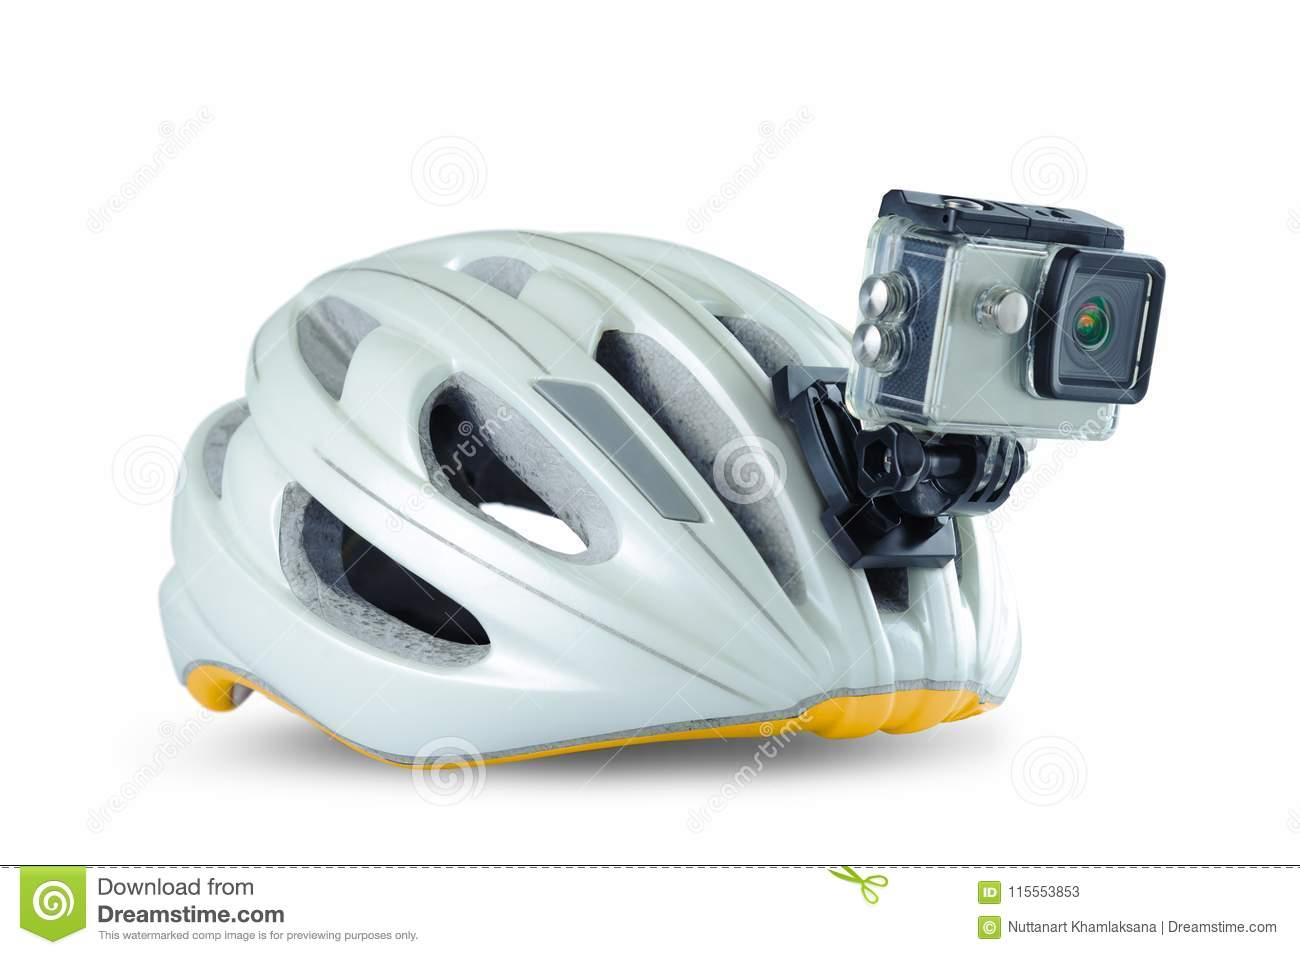 8704b1f8fc7 Bicycle helmet with front action camera isolated on background. Safety  equipment